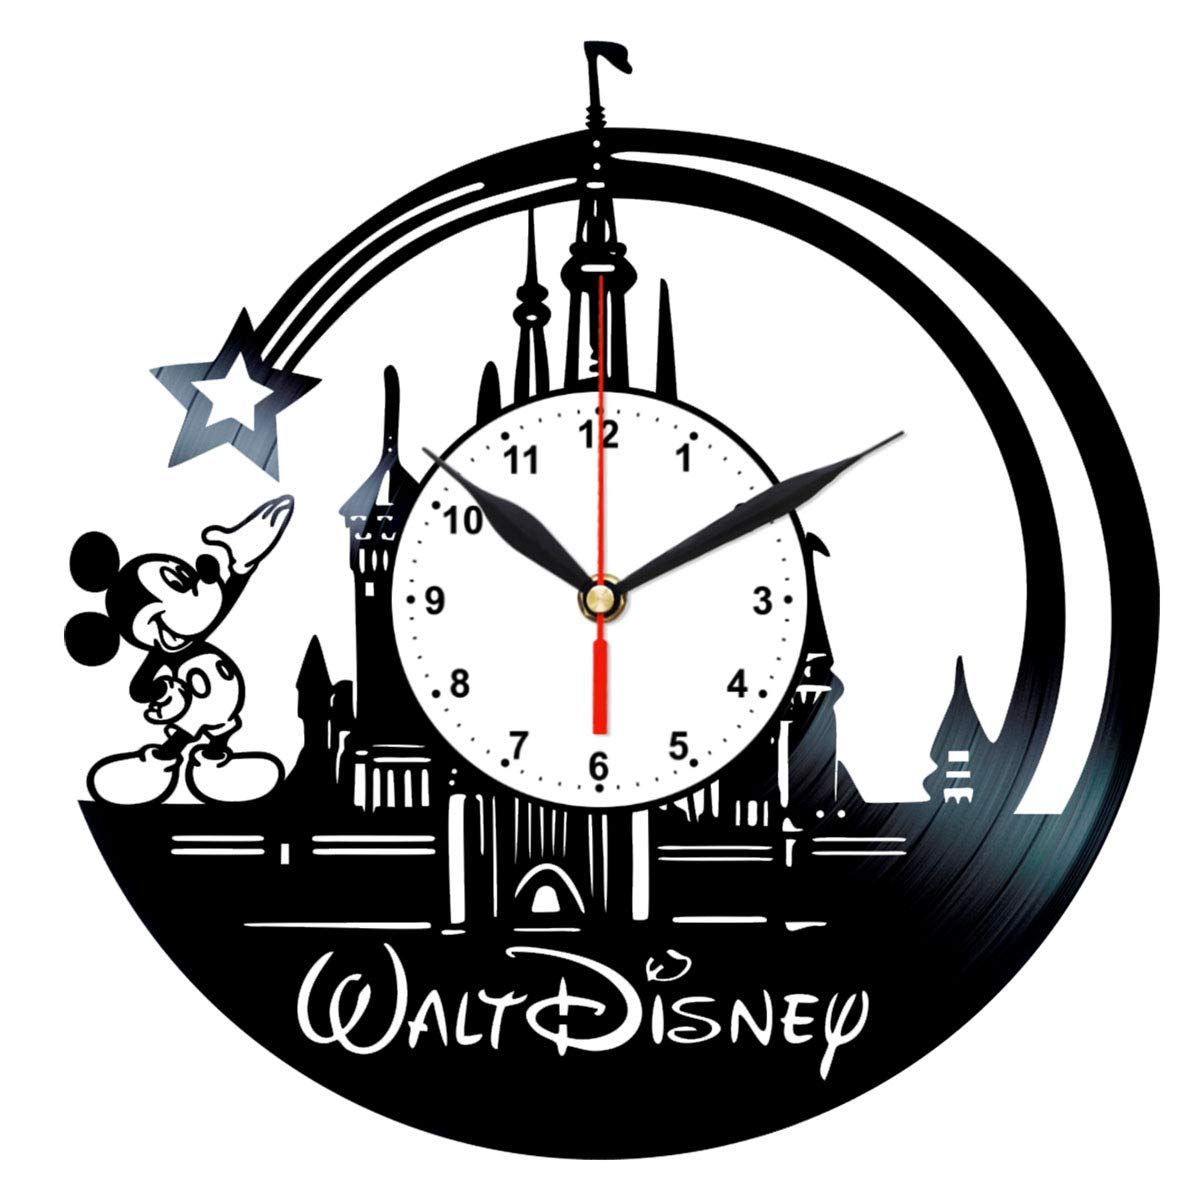 Walt Disney World Vinyl Clock - Mickey Mouse Themed Gifts Girls - Vintage Record Wall Decor Queen Clocks 0086WR2-W